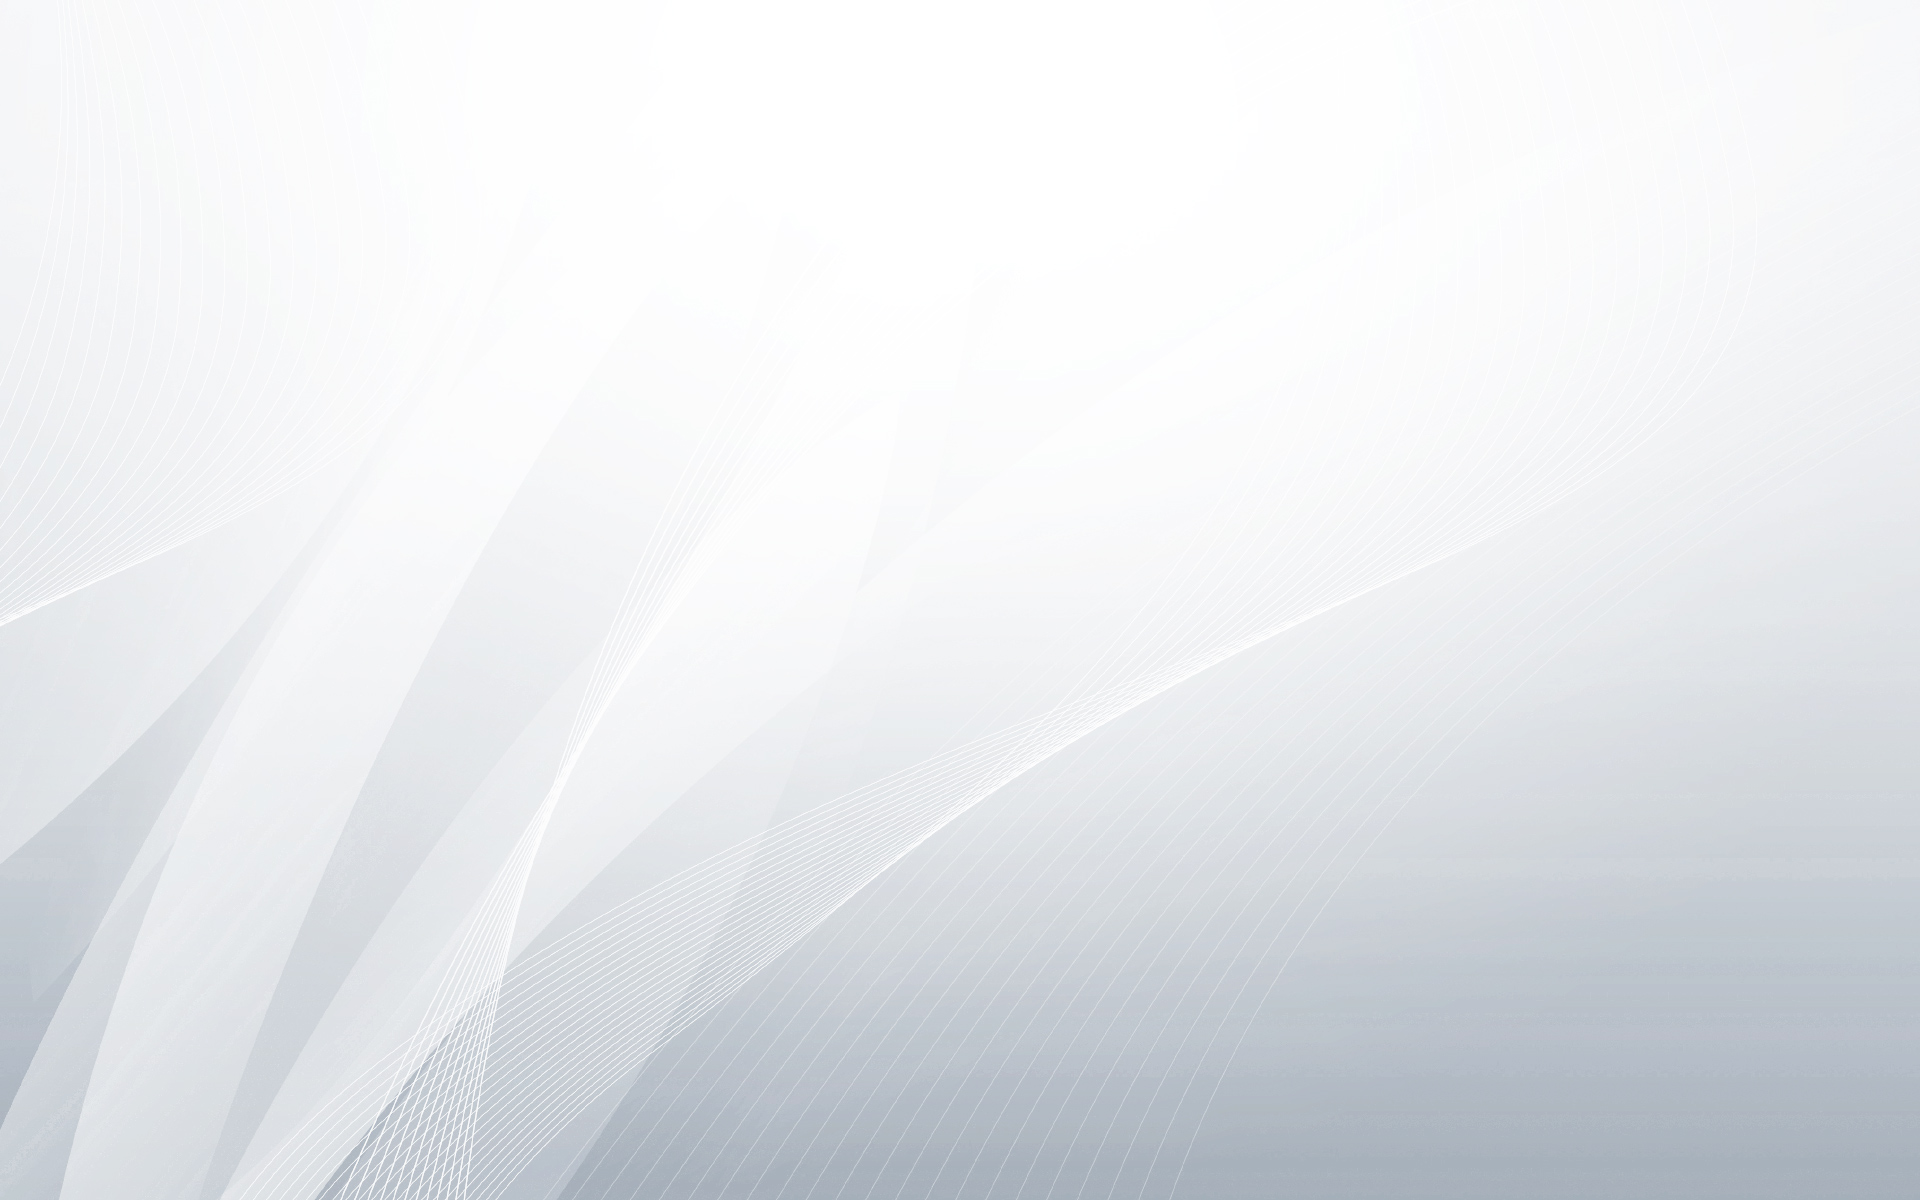 free simple backgrounds 17280